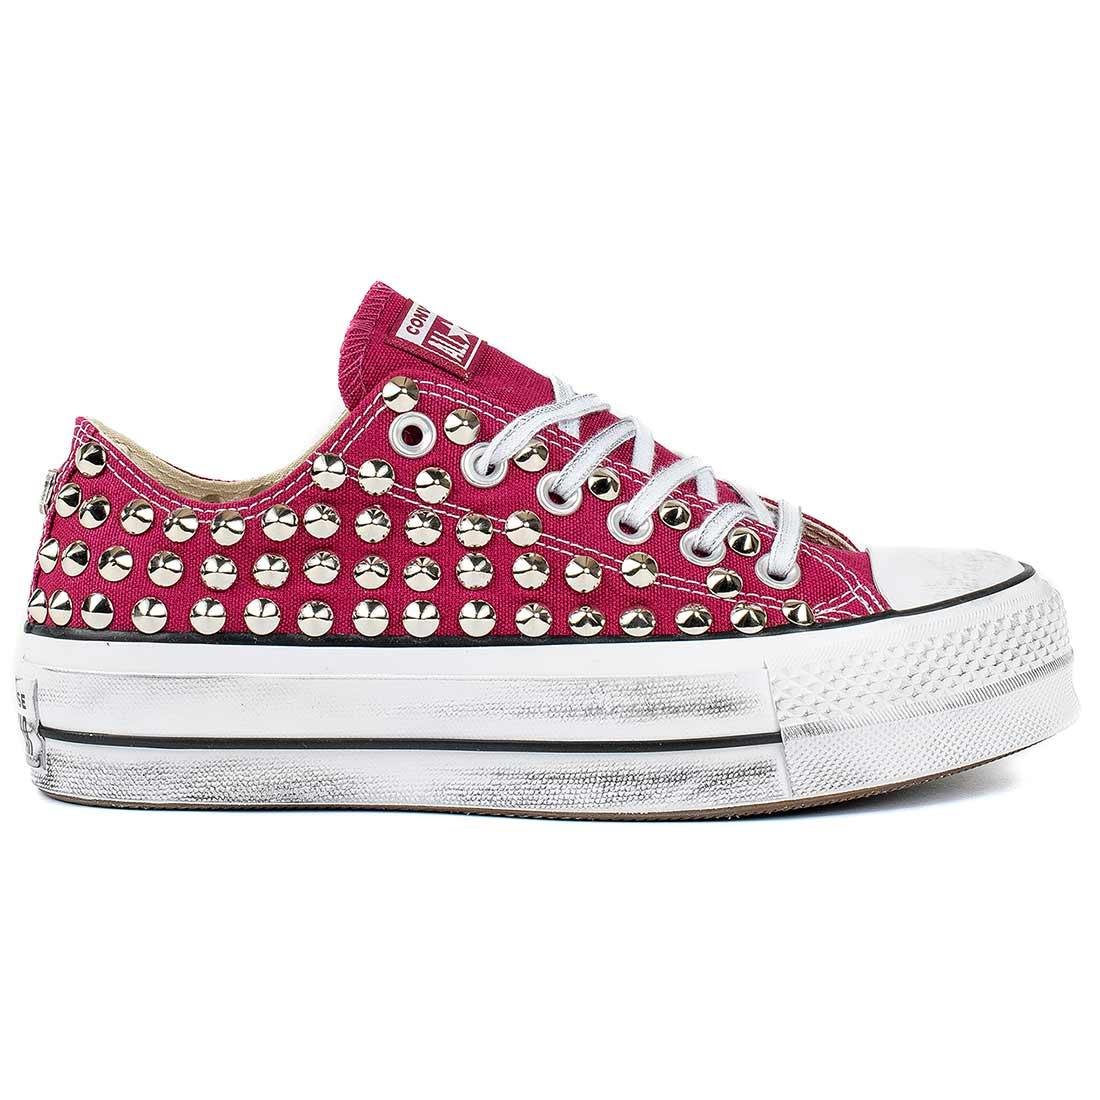 converse all star gomma alta